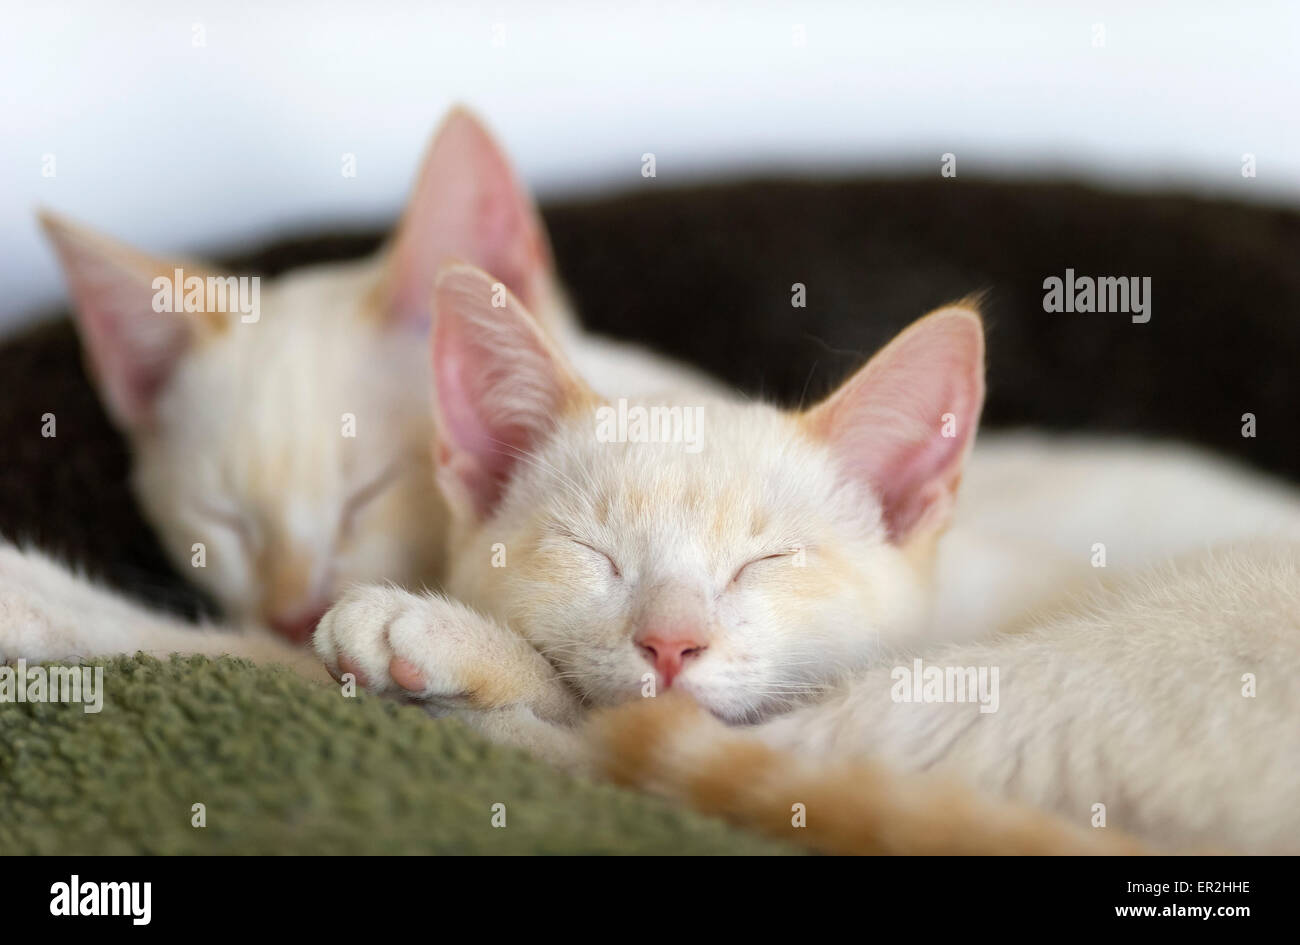 Kittens sleeping peacefully in their bed together. - Stock Image